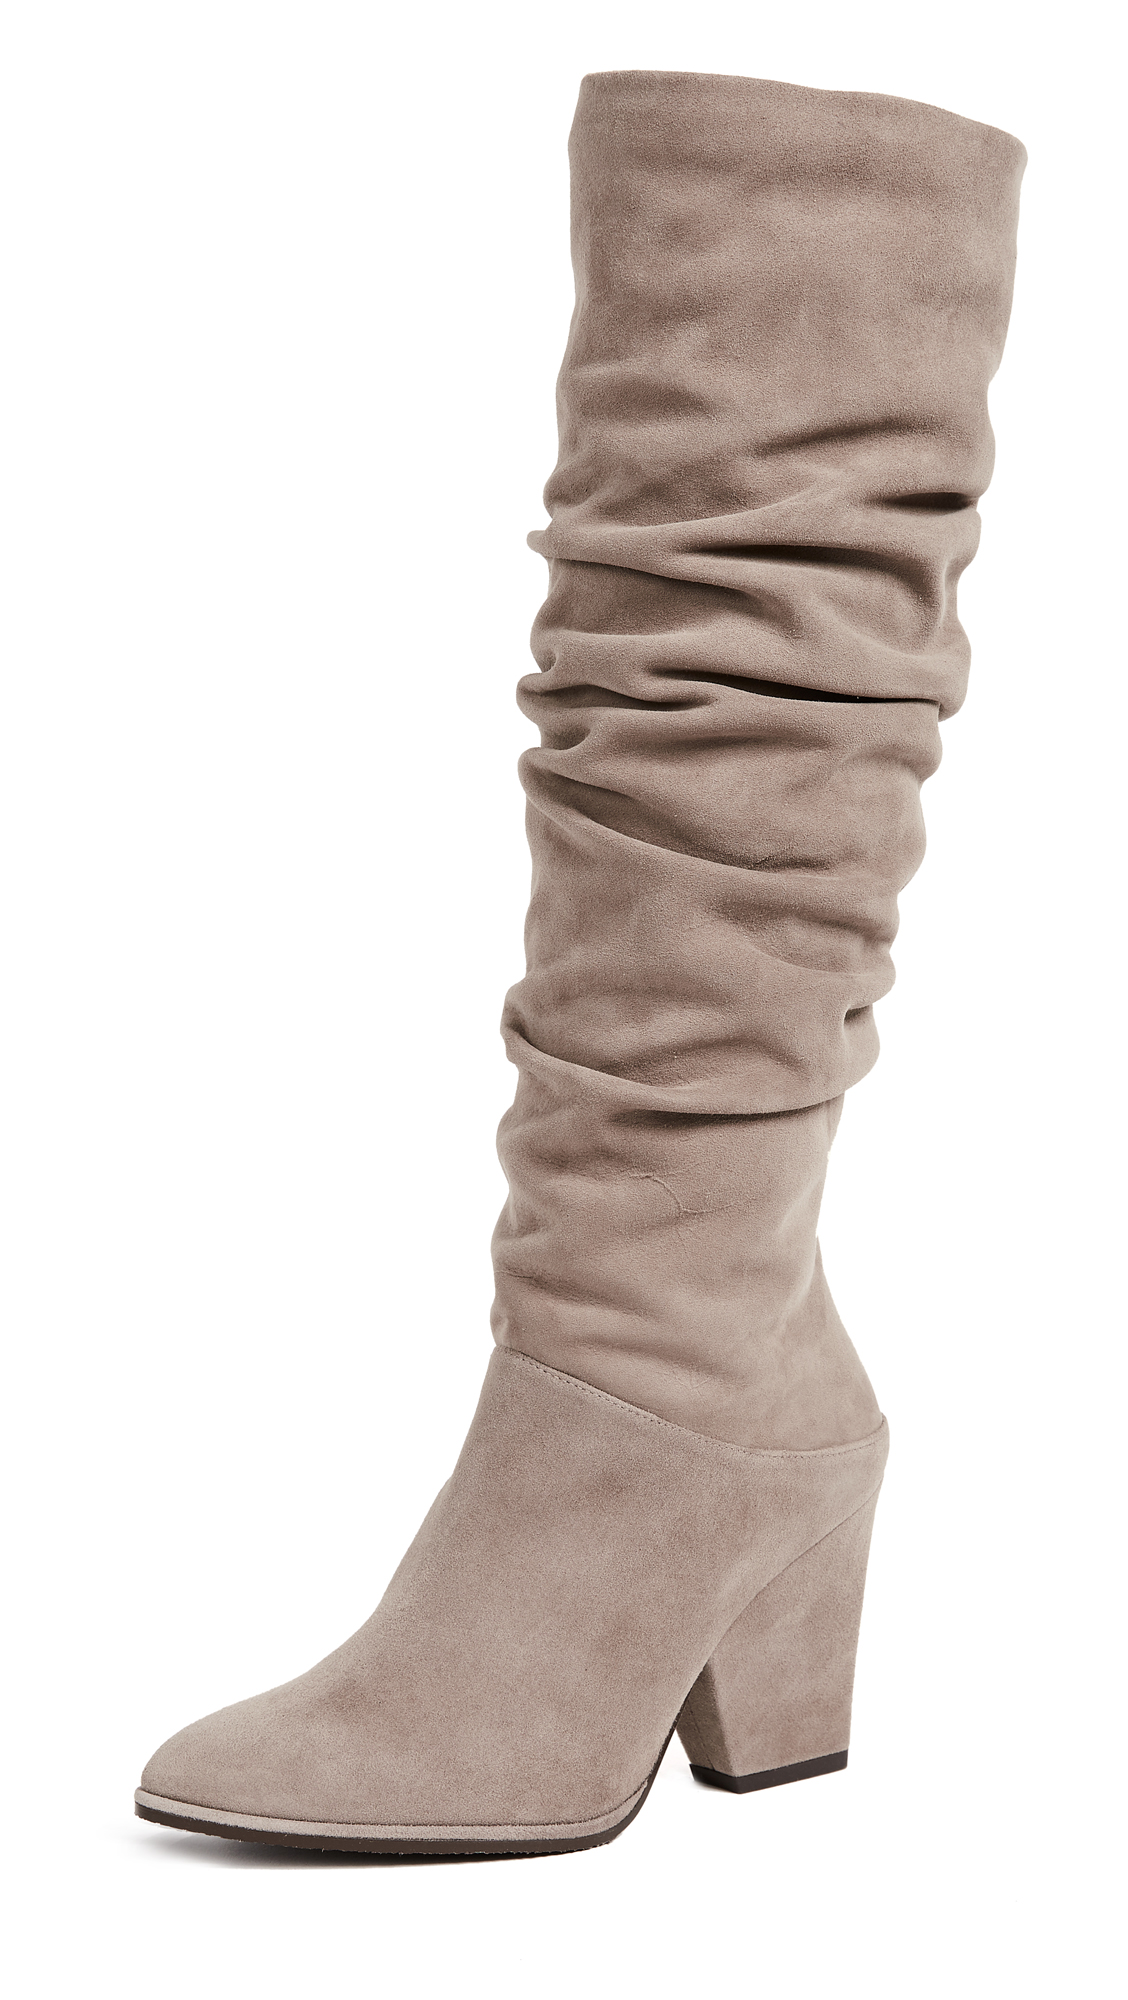 Stuart Weitzman Smashing Knee High Boots - Topo